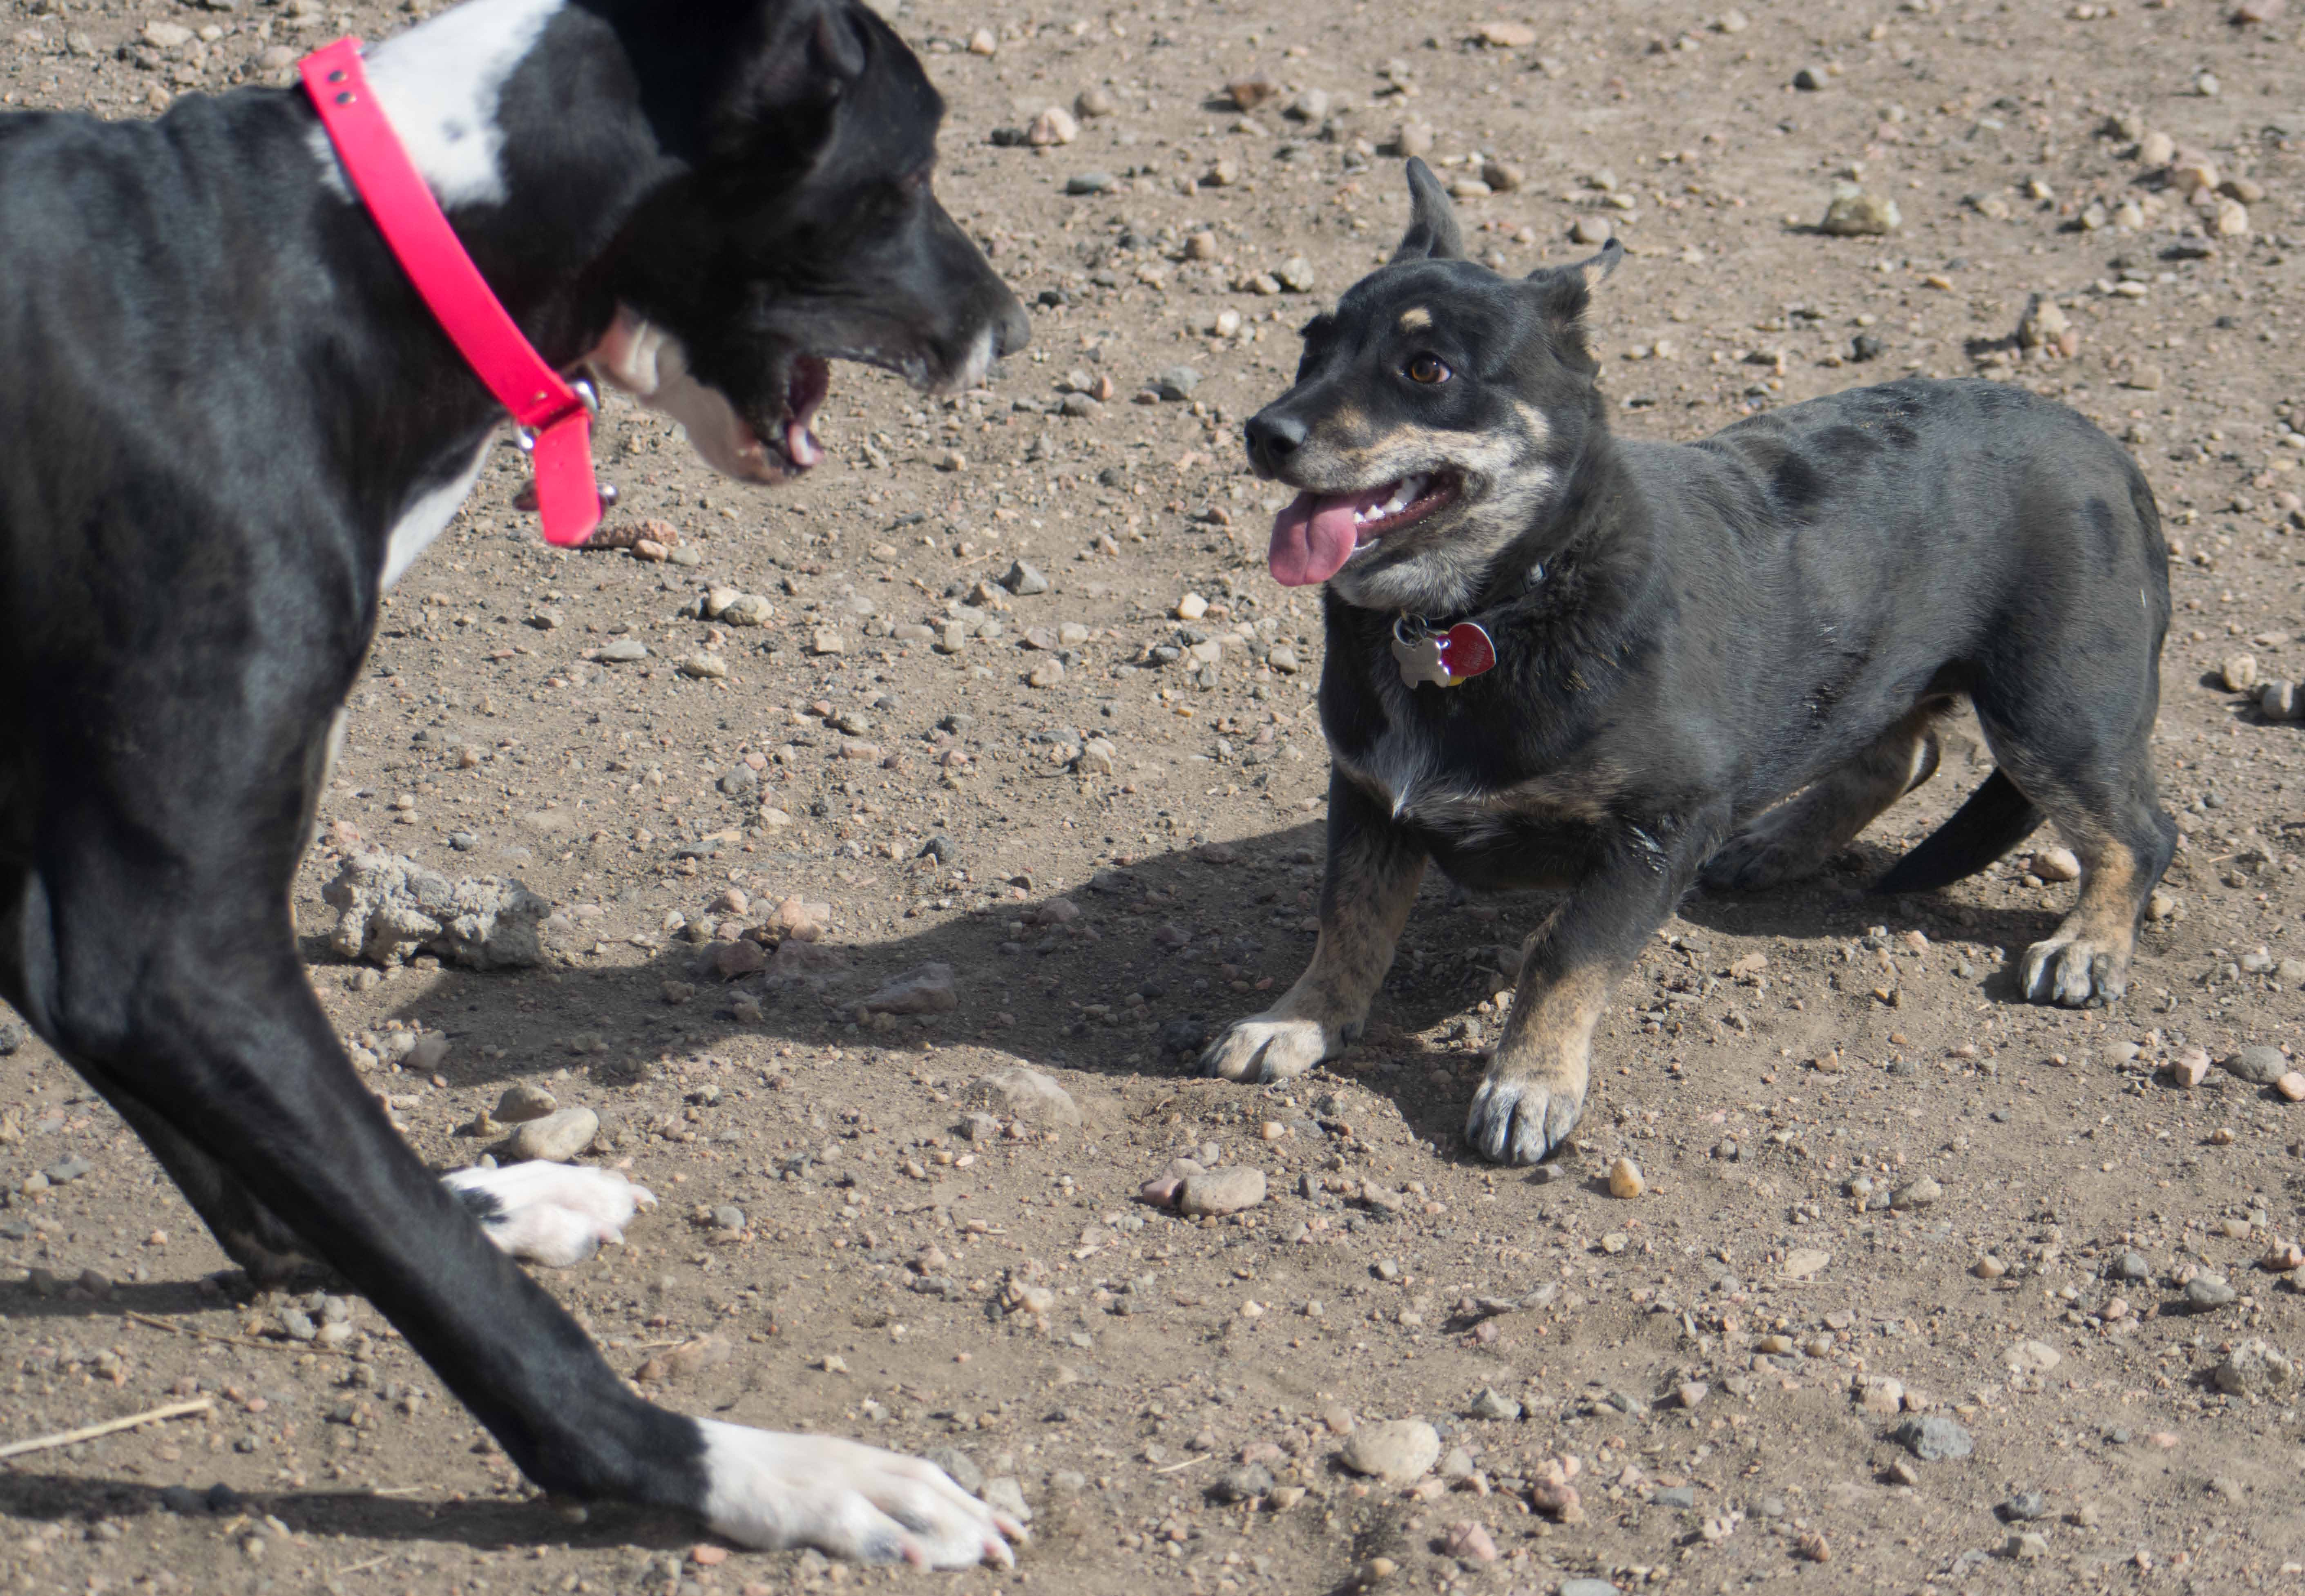 Viva and Tegan at the dog park-05-1.jpg